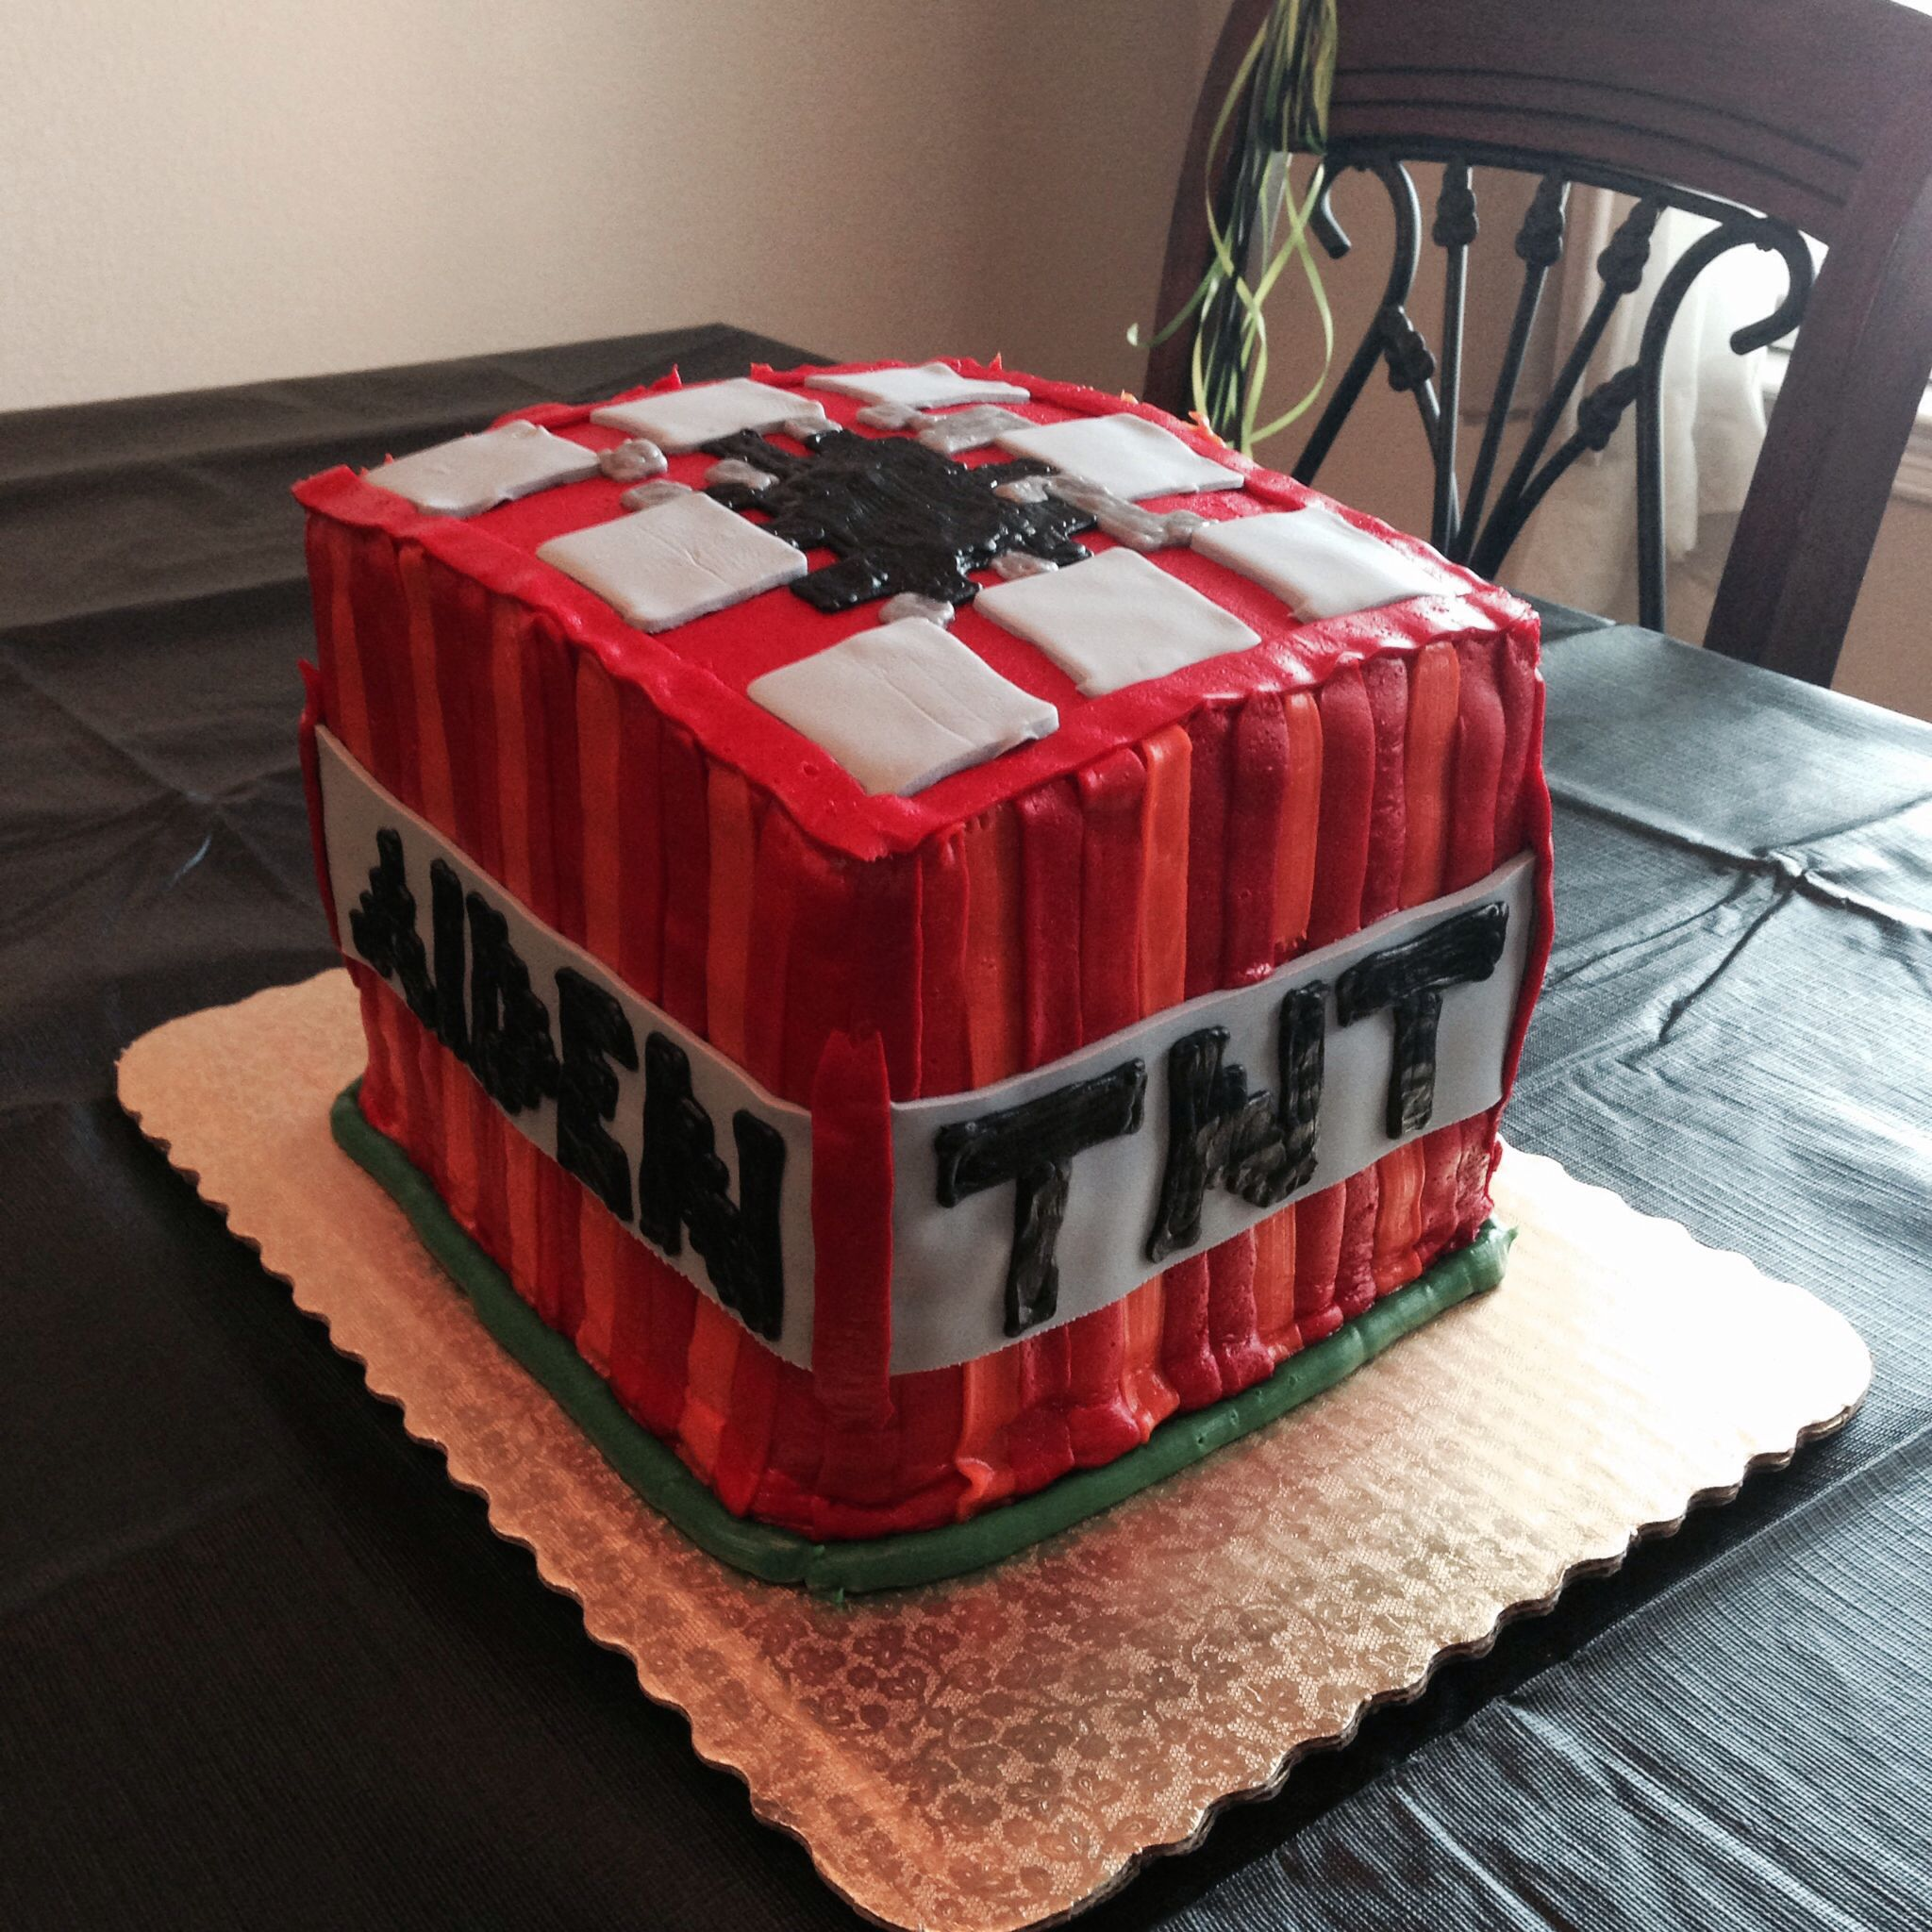 TNT Minecraft cake from Albertsons Should have been more clear on